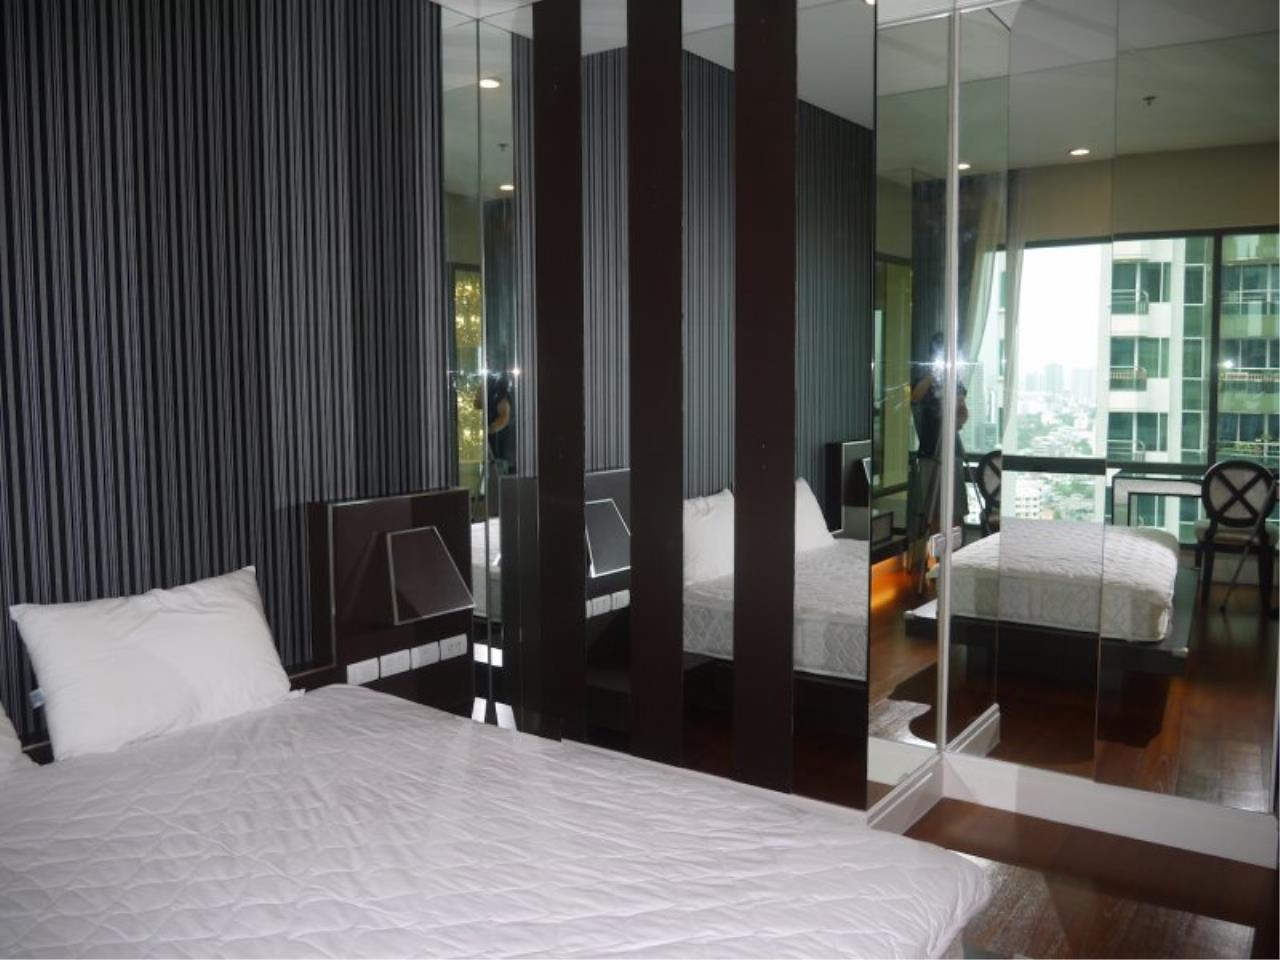 Piri Property Agency's Duplex 3 Bedrooms in the Bright Condo for sale on high floor 7